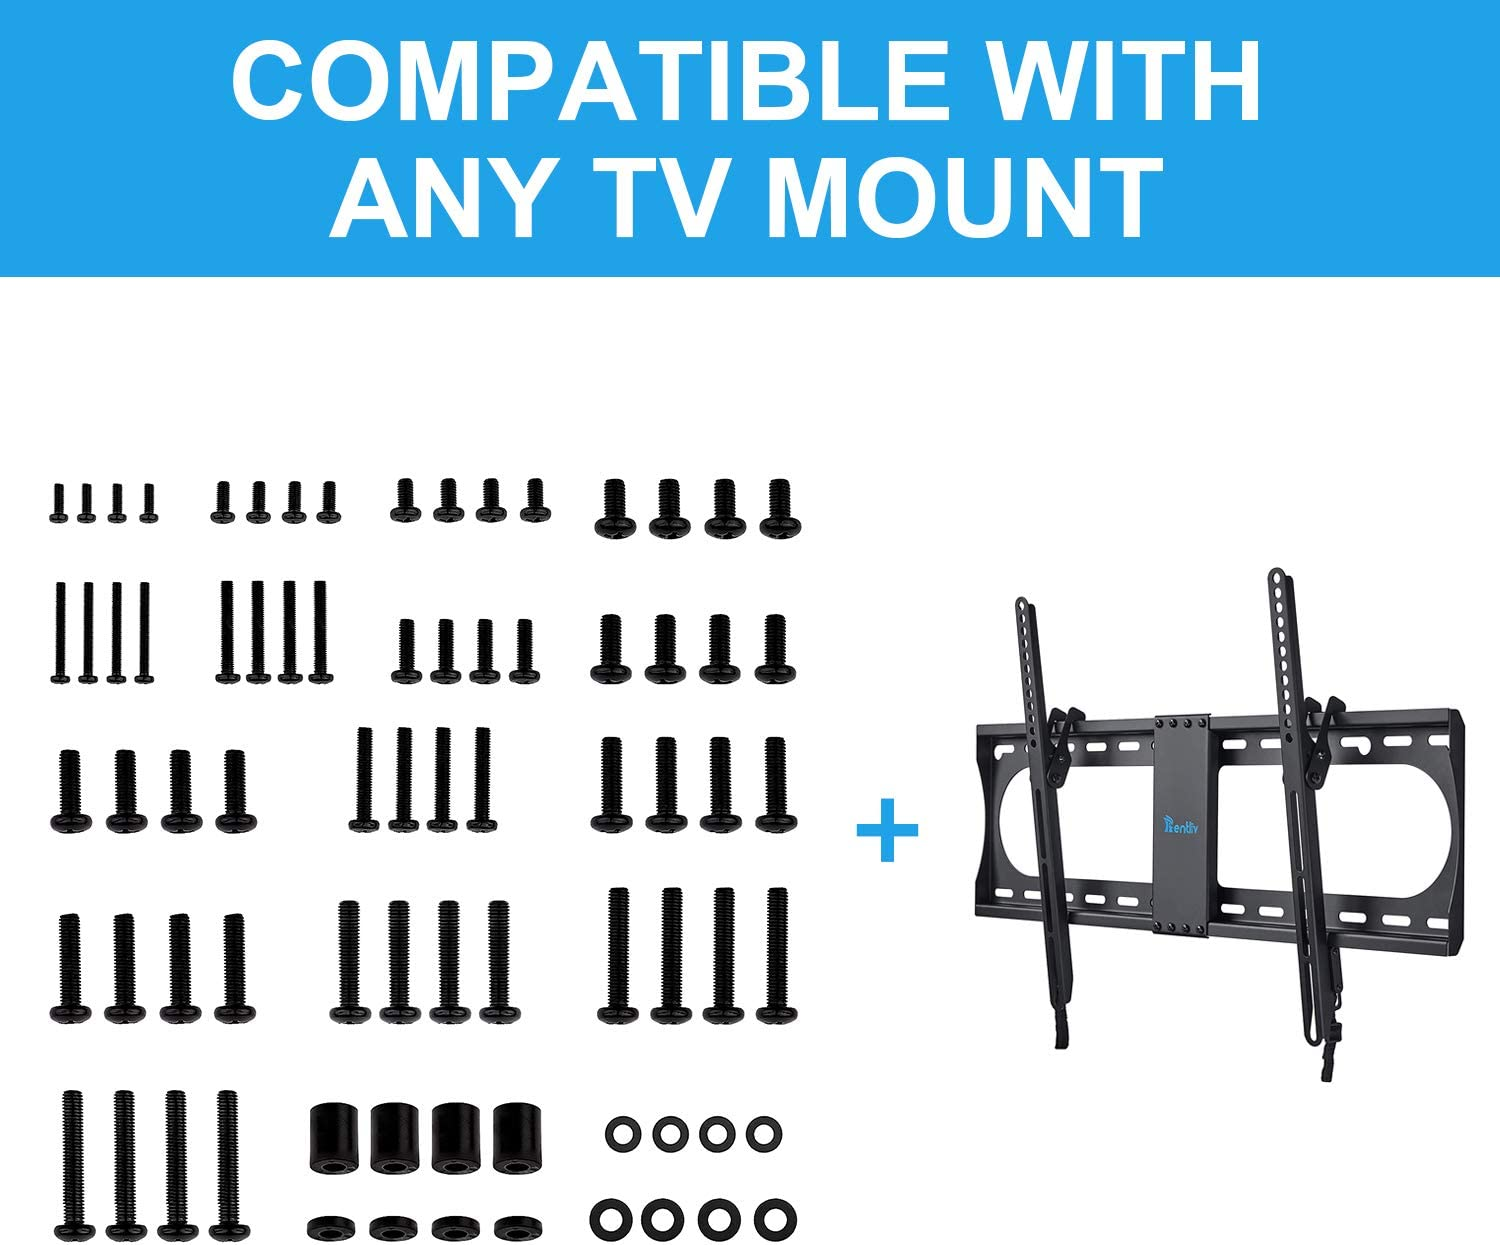 Rentliv Universal TV Mounting Hardware Kit, Fits All TVs Up to 80